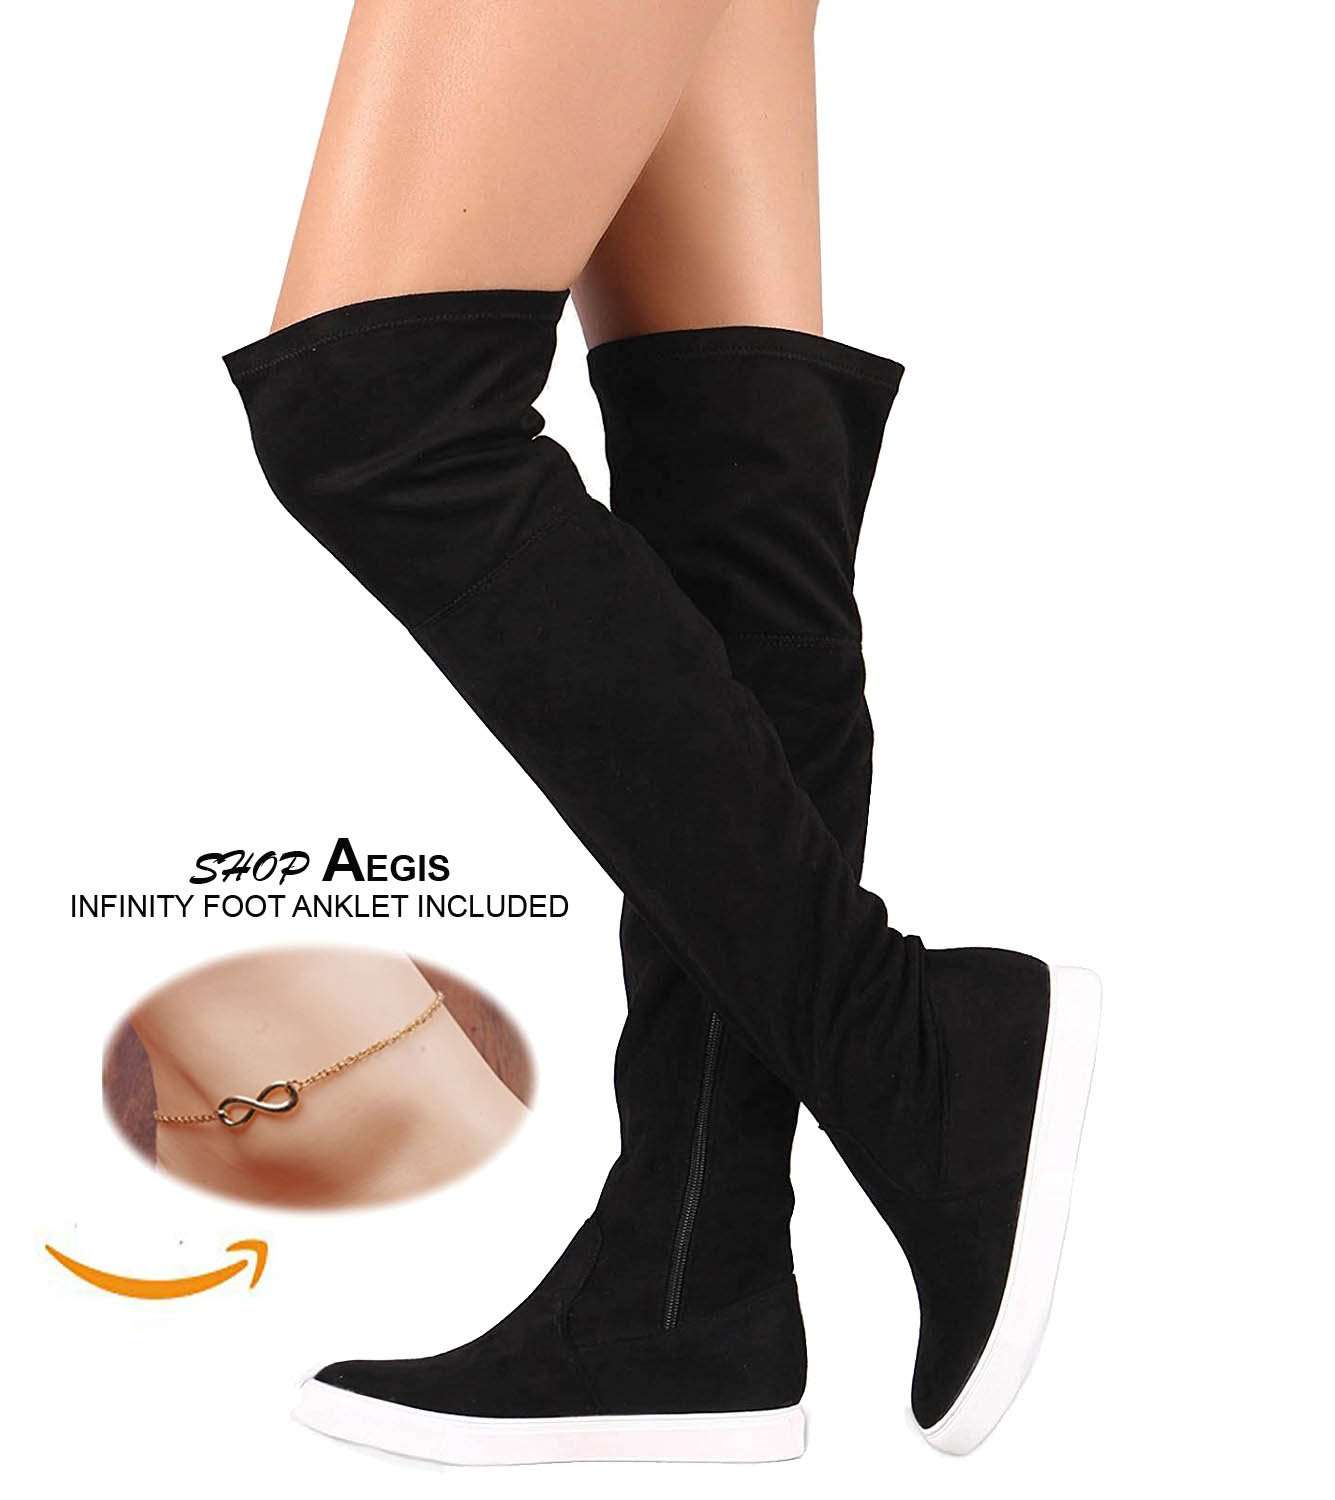 Glaze. Stylish Women's Trendy Lounge Black Suede High Over-The-Knee Chic Sneaker Boots Zip Closure Shop Aegis Foot Anklet [Size 5.5]